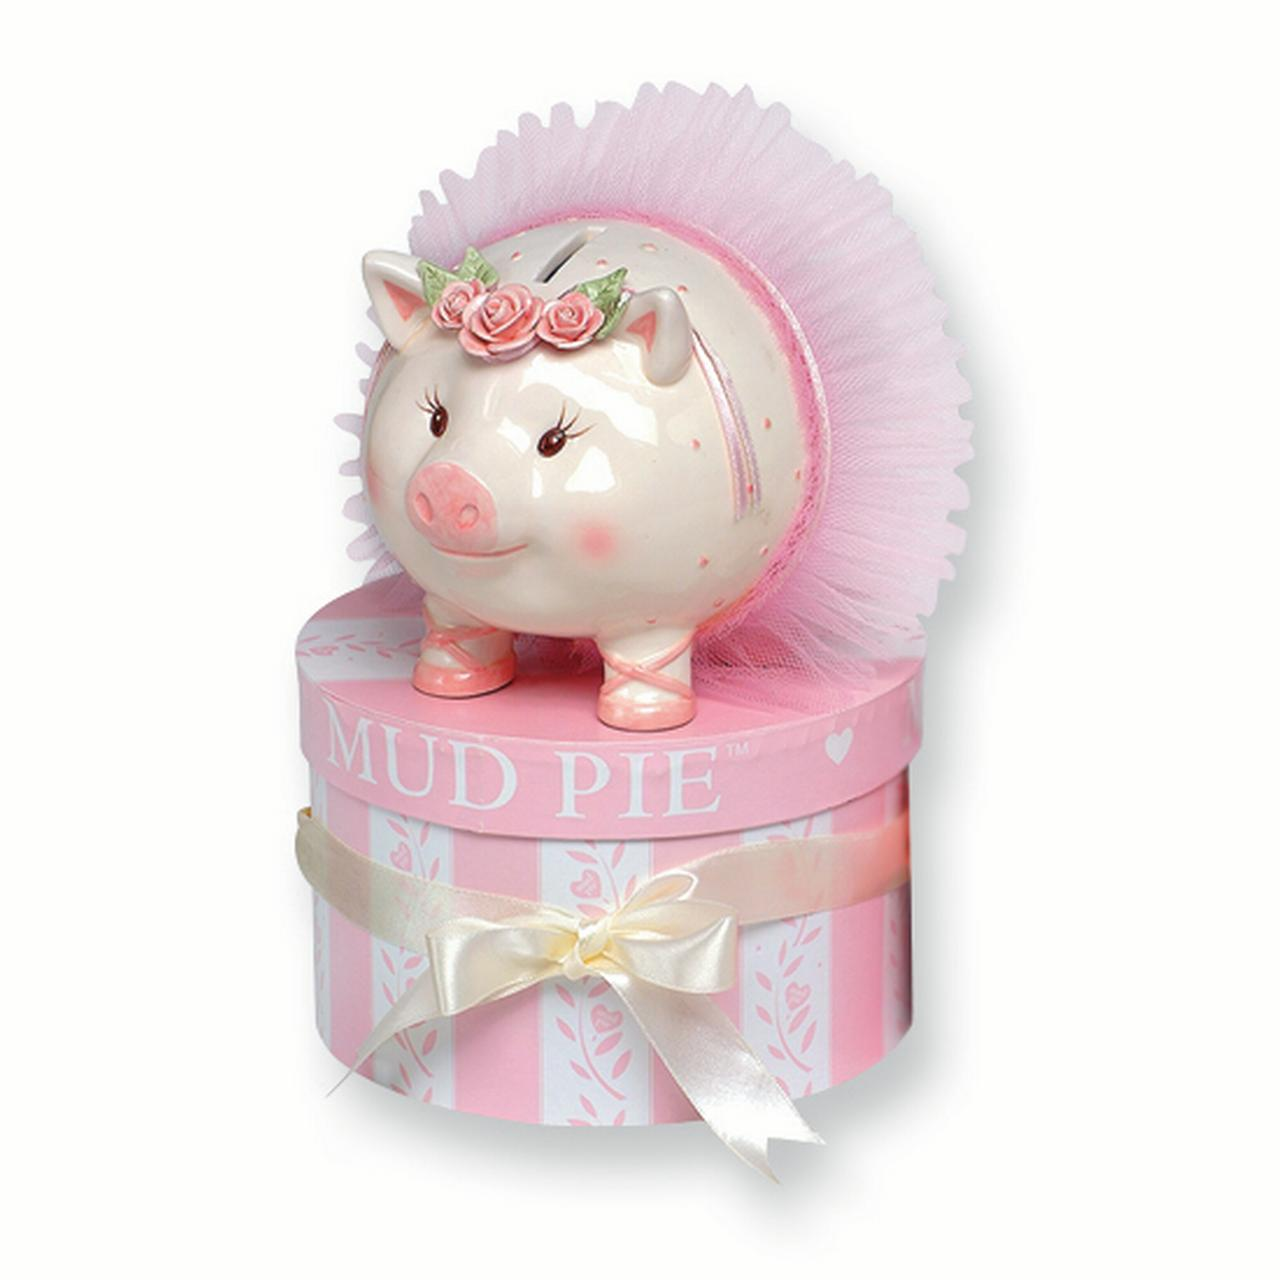 Pink Ballerina Piggy Bank GL5283 by Mud Pie